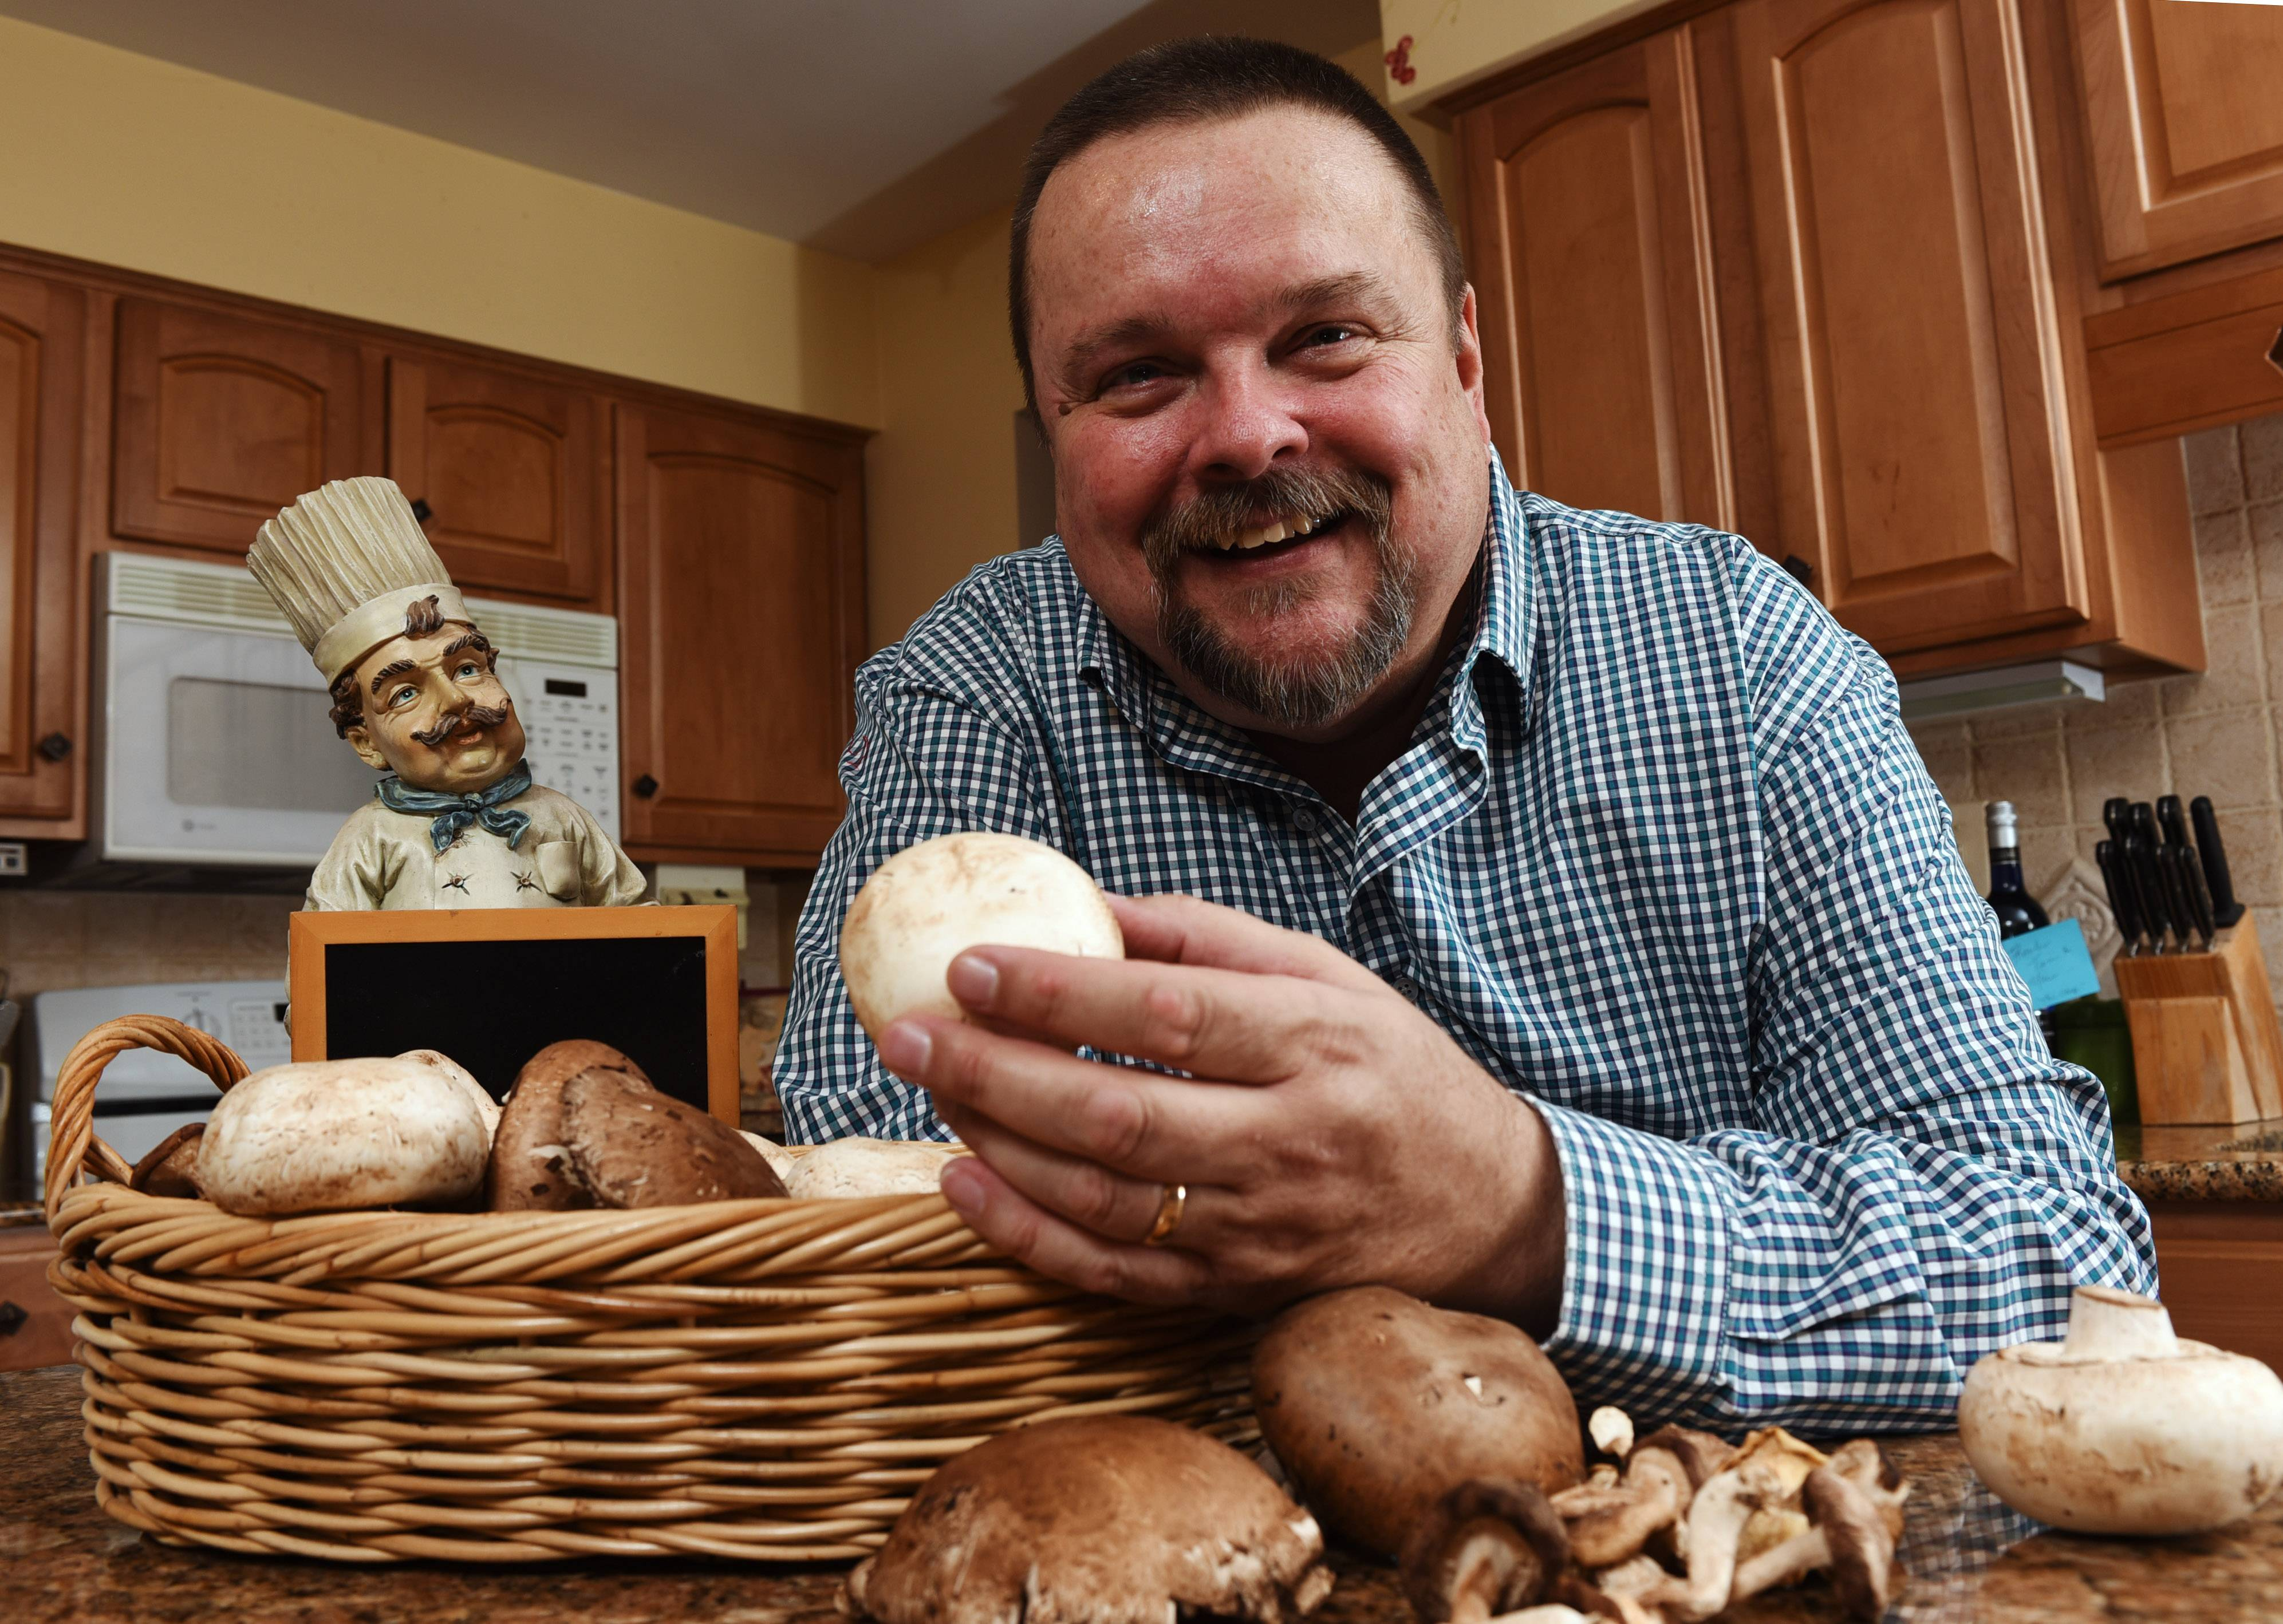 James Litza of Wood Dale enjoys cooking with mushrooms.